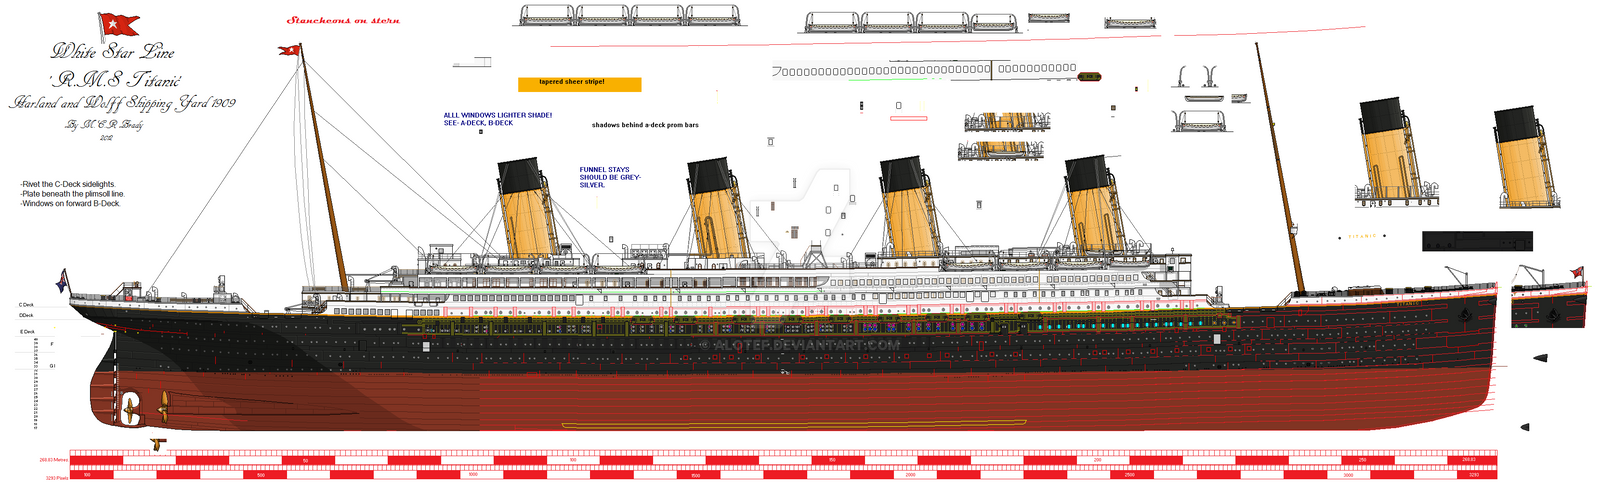 RMS Titanic Profile WIP By Alotef On DeviantArt